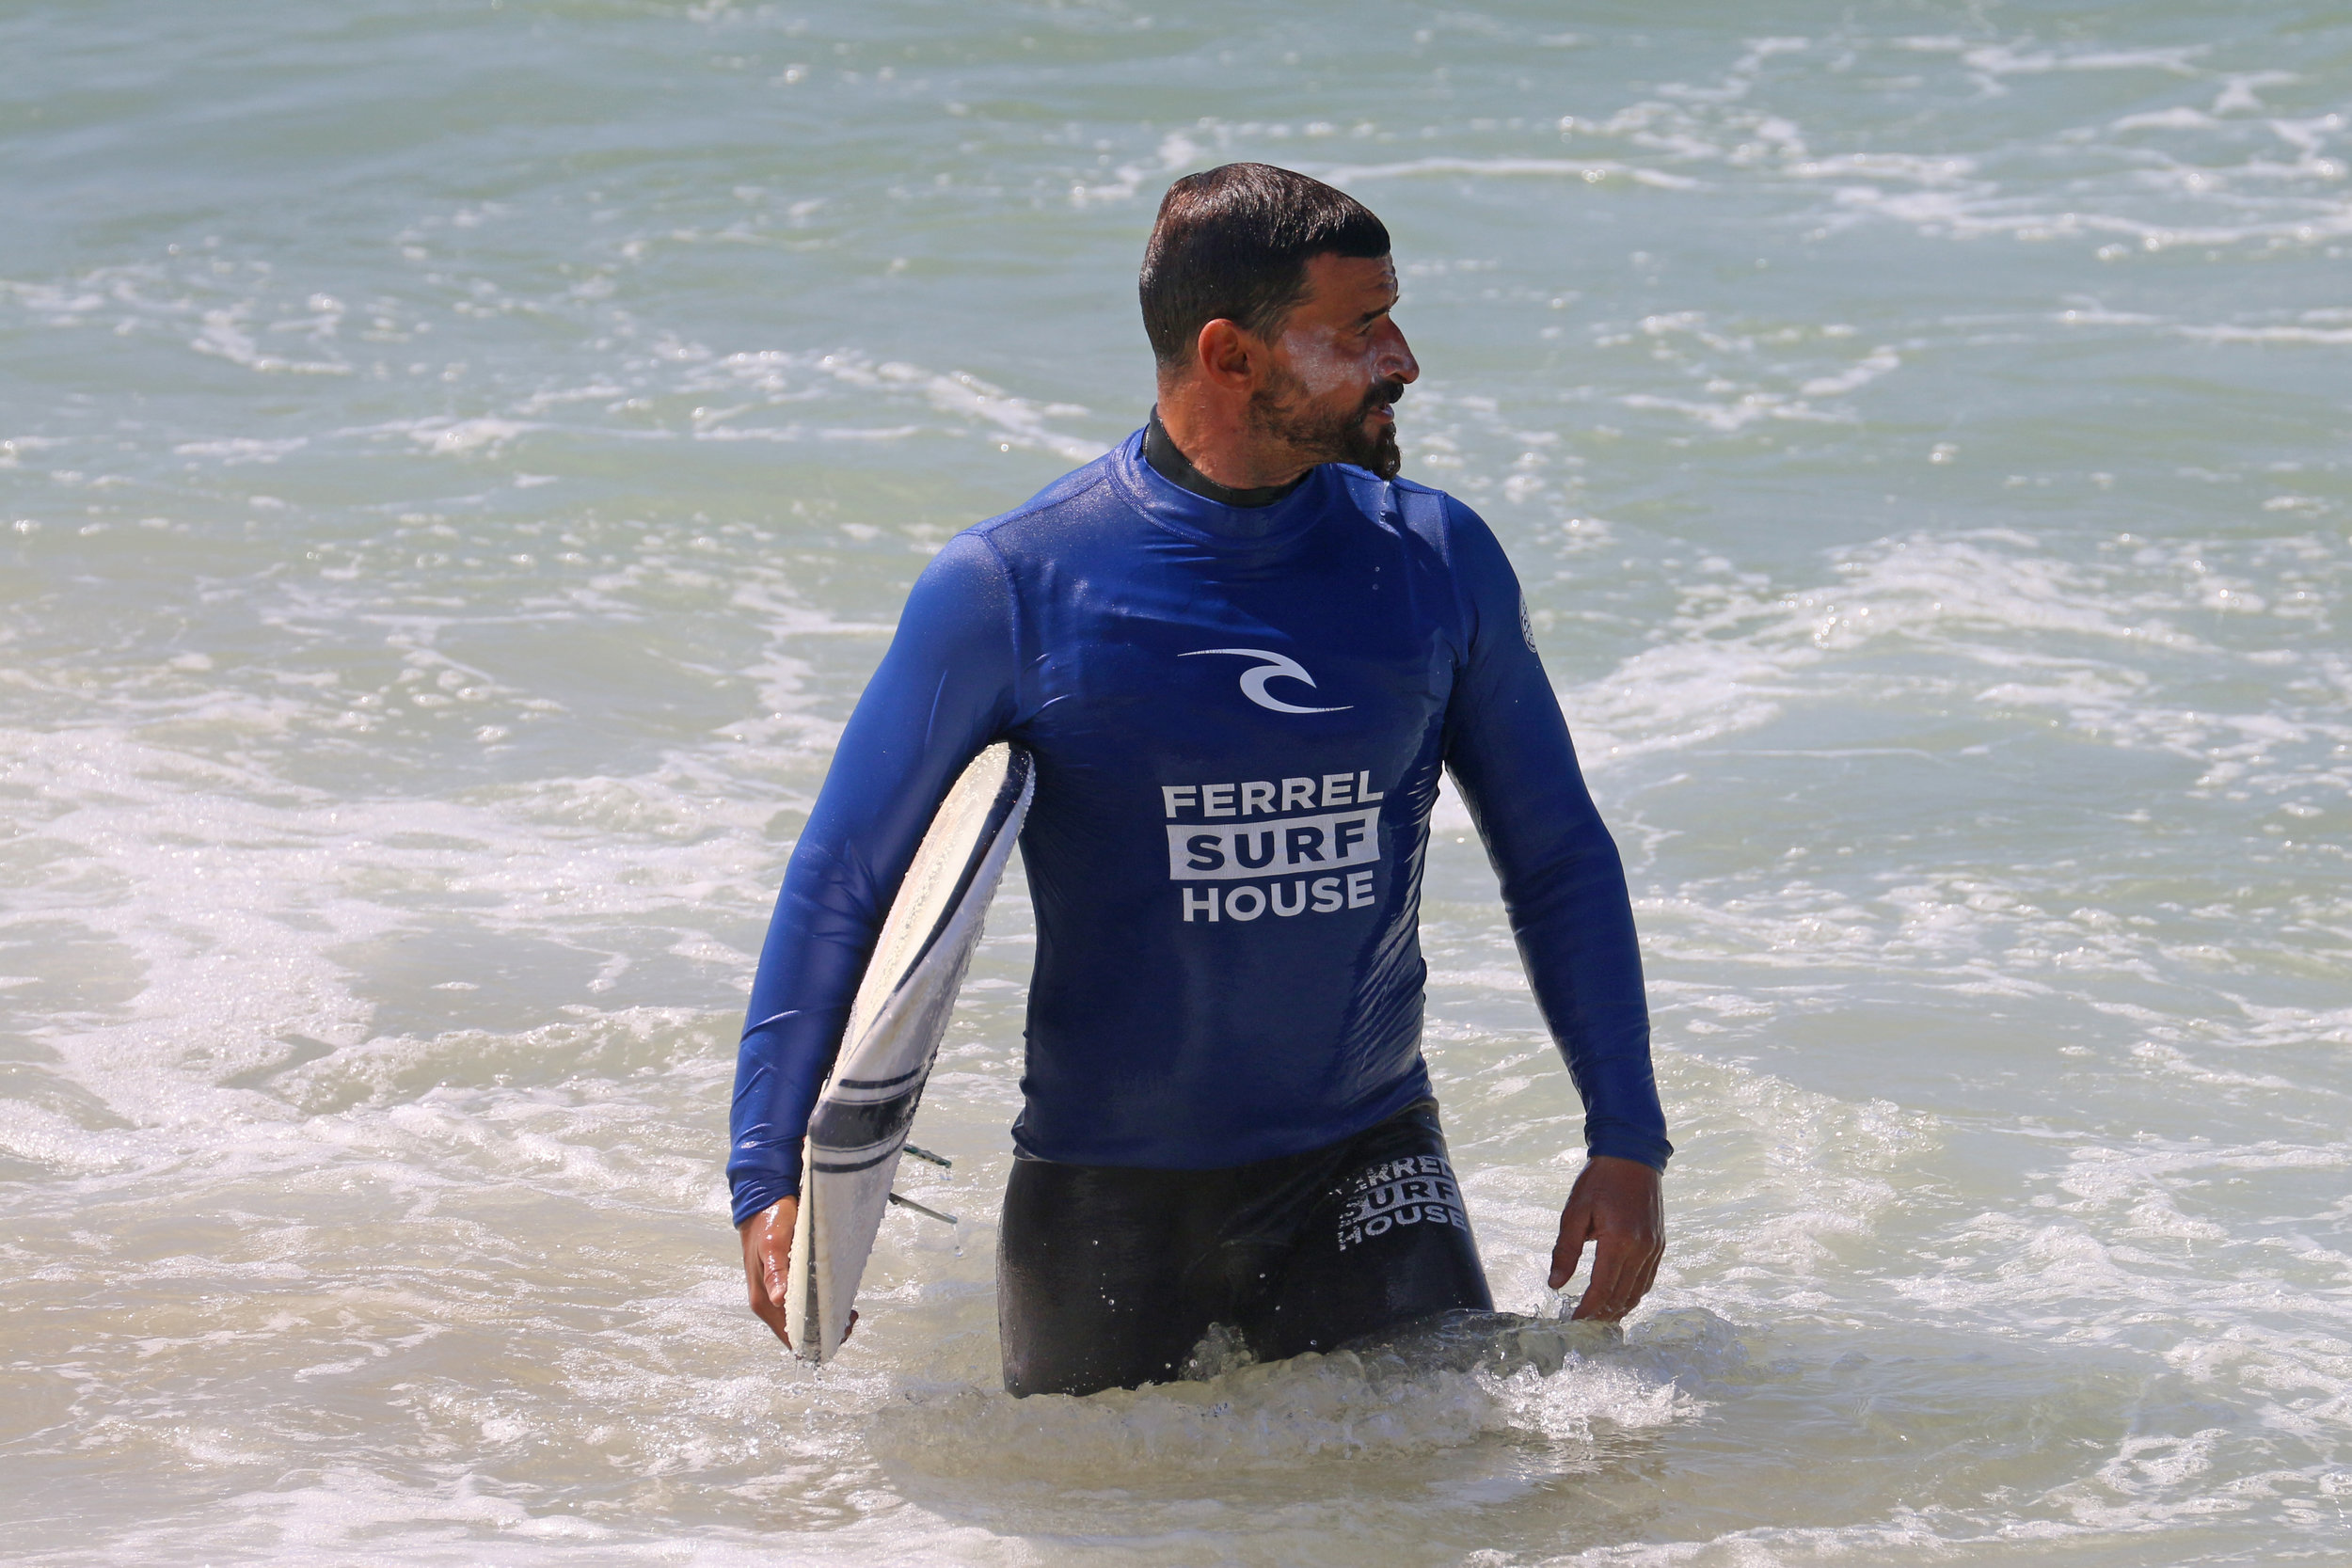 Pedro Feliciano - If there is anyone you can feel safe with in the Portuguese waters, its Pedro. I have never seen an instructor who would protect the space of his students so much and who loves to teach so strongly. Born in South Africa and from Lisbon, he has been surfing for 30 years and has over 10 years of teaching experience in both surfing and cross-fit. He is a good psychologist as well. It is unbelievable, but Pedro observes everyone in the water. Whatever mentality or perception about surfing you arrive to his lesson you will definitely get more than just surfing. You will get a philosophy of life as Pedro shares his wisdom with those who are ready to take it. He teaches you do not expect anything, do not be upset about your progress, do not be obsessed about results. Let you be in the present moment and enjoy it. Trust the ocean and yourself. Relax, avoid panic and respect people in the water more than your ambitions. This is the main rule.